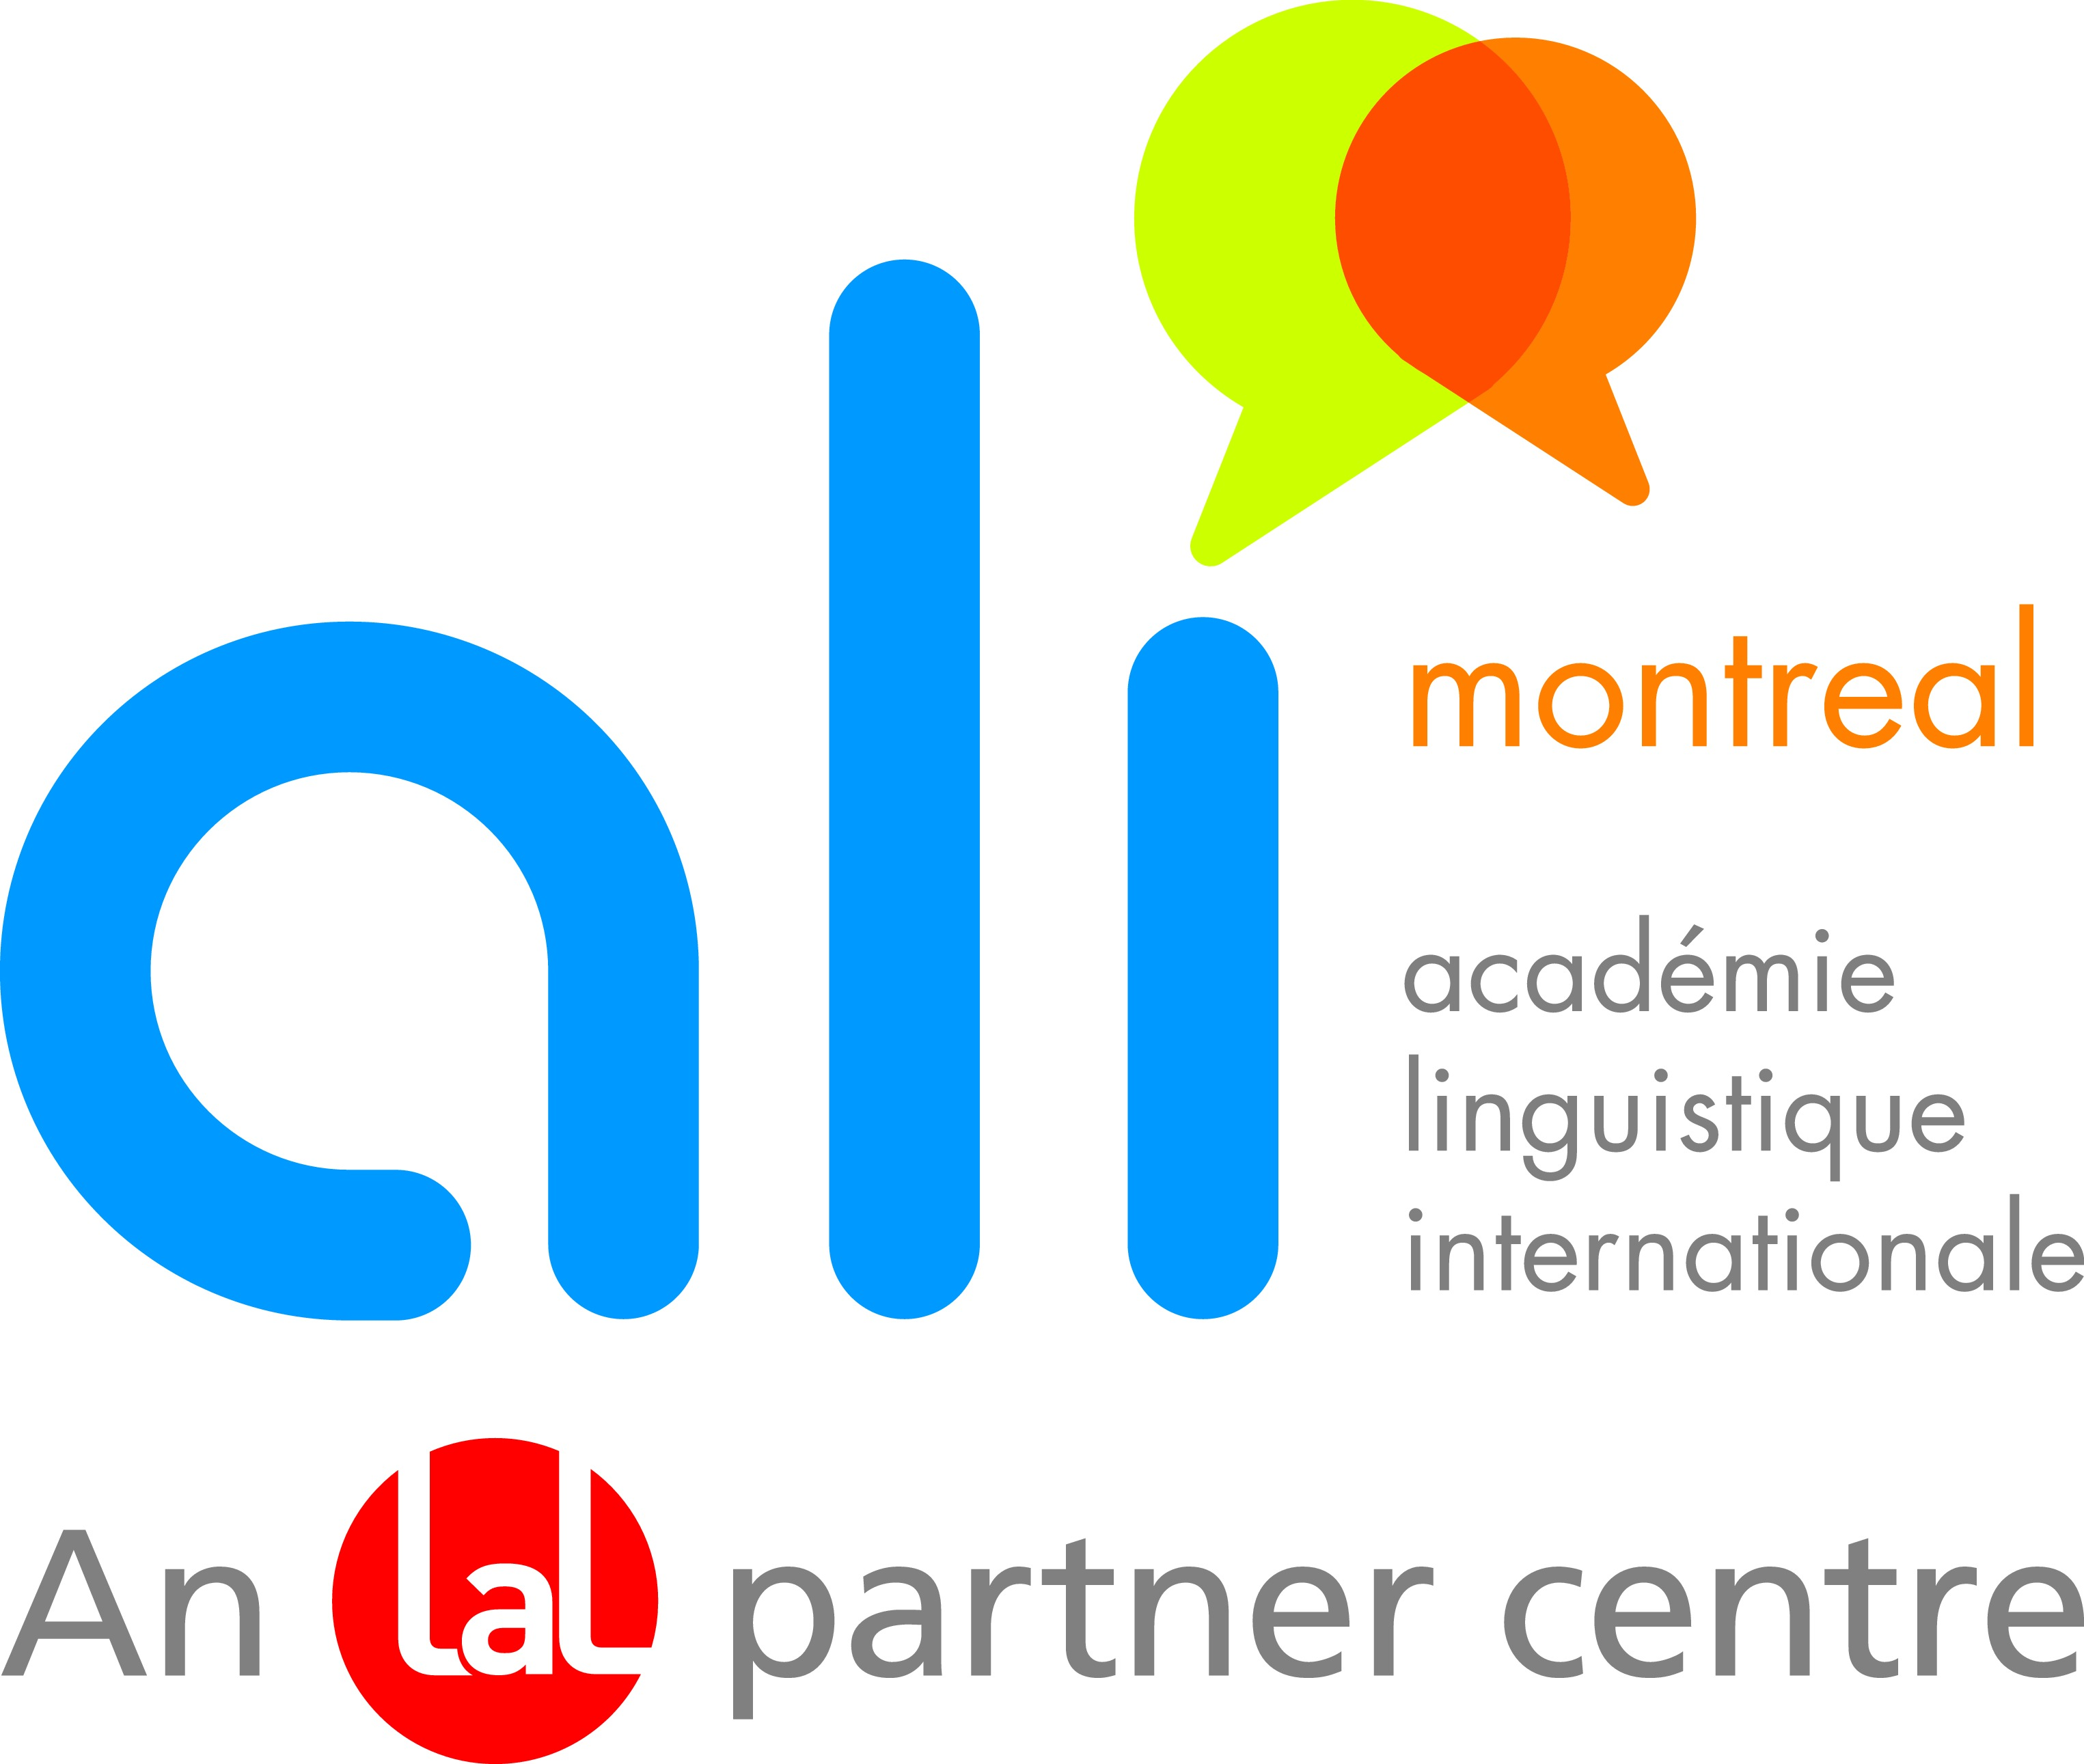 Académie Linguistique Internationale (ALI)